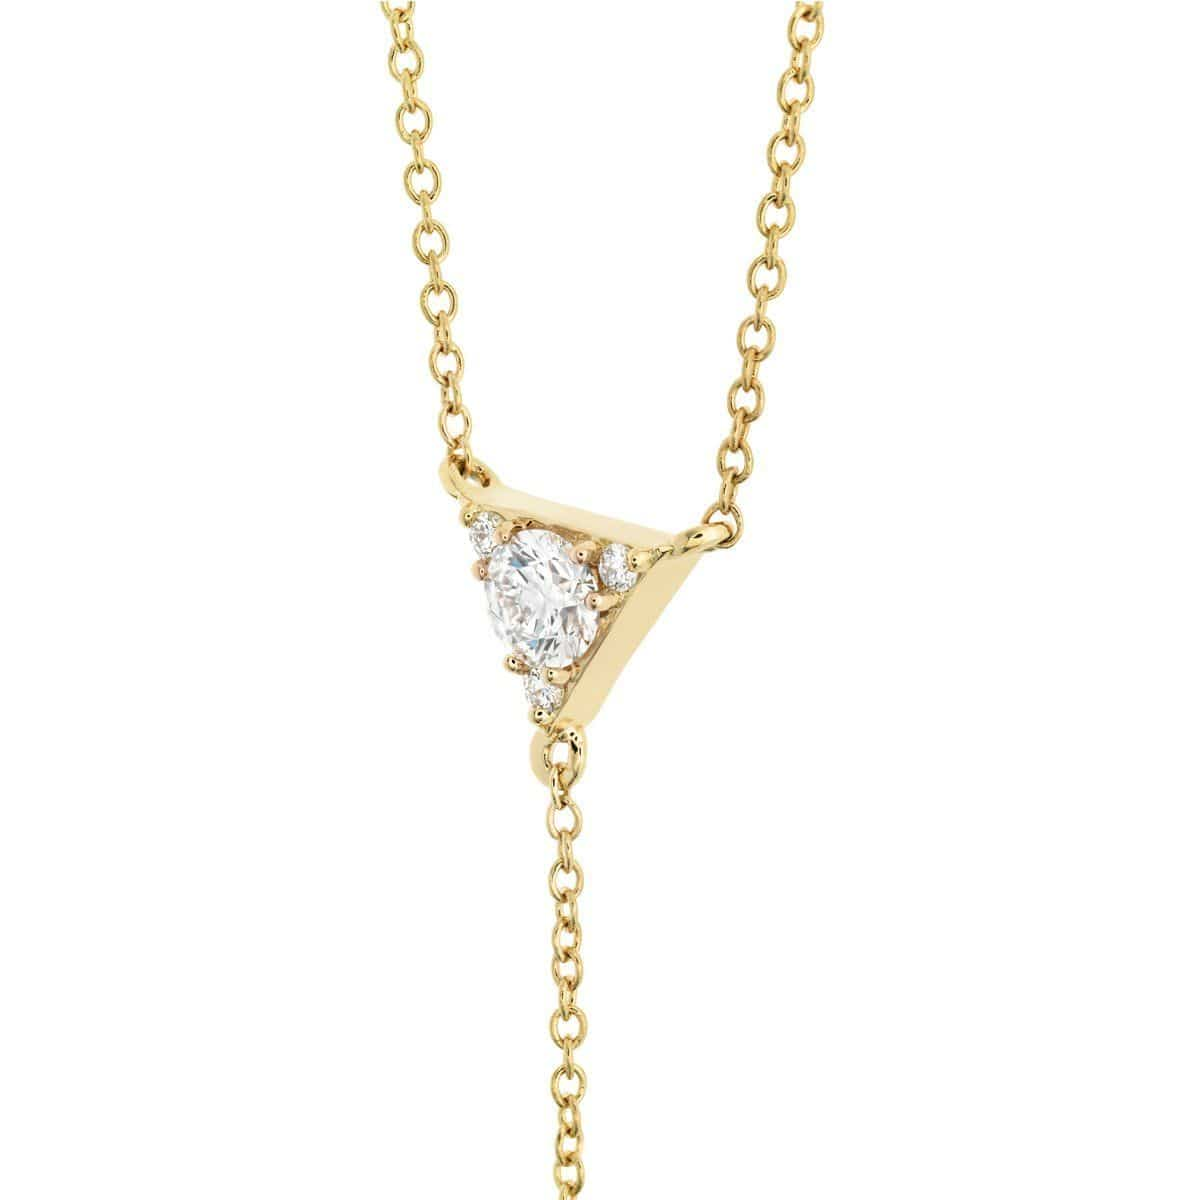 Triplicity Triangle Lariat Diamond Necklace - HFNTRIL00428